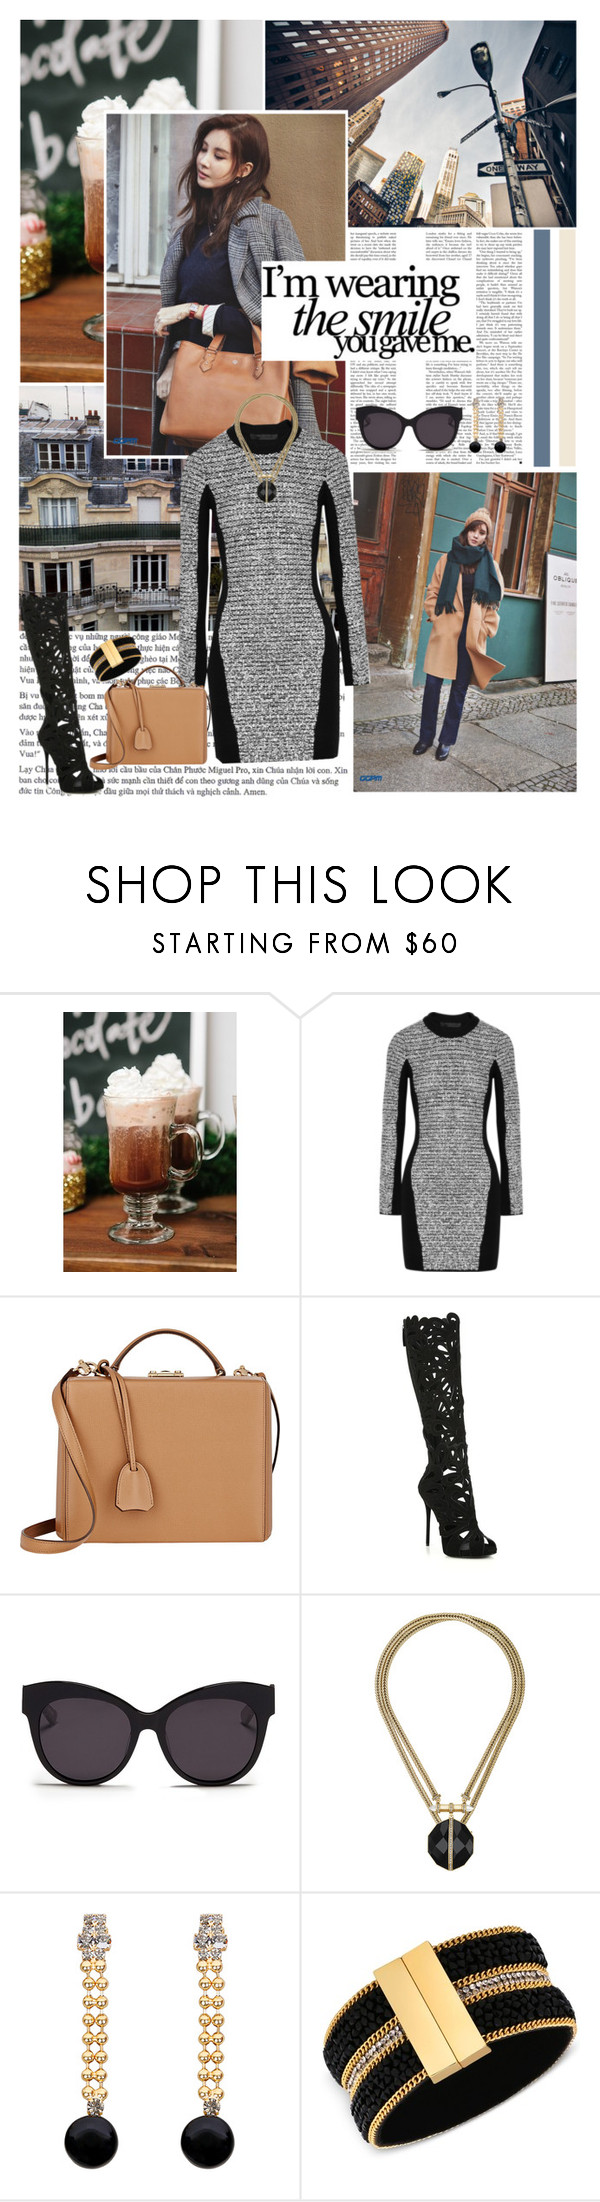 """I believe in you"" by ita-varela ❤ liked on Polyvore featuring Zara, Pottery Barn, Alexander Wang, Mark Cross, Giuseppe Zanotti, Blanc & Eclare, Chloe + Isabel, Marni and GUESS"